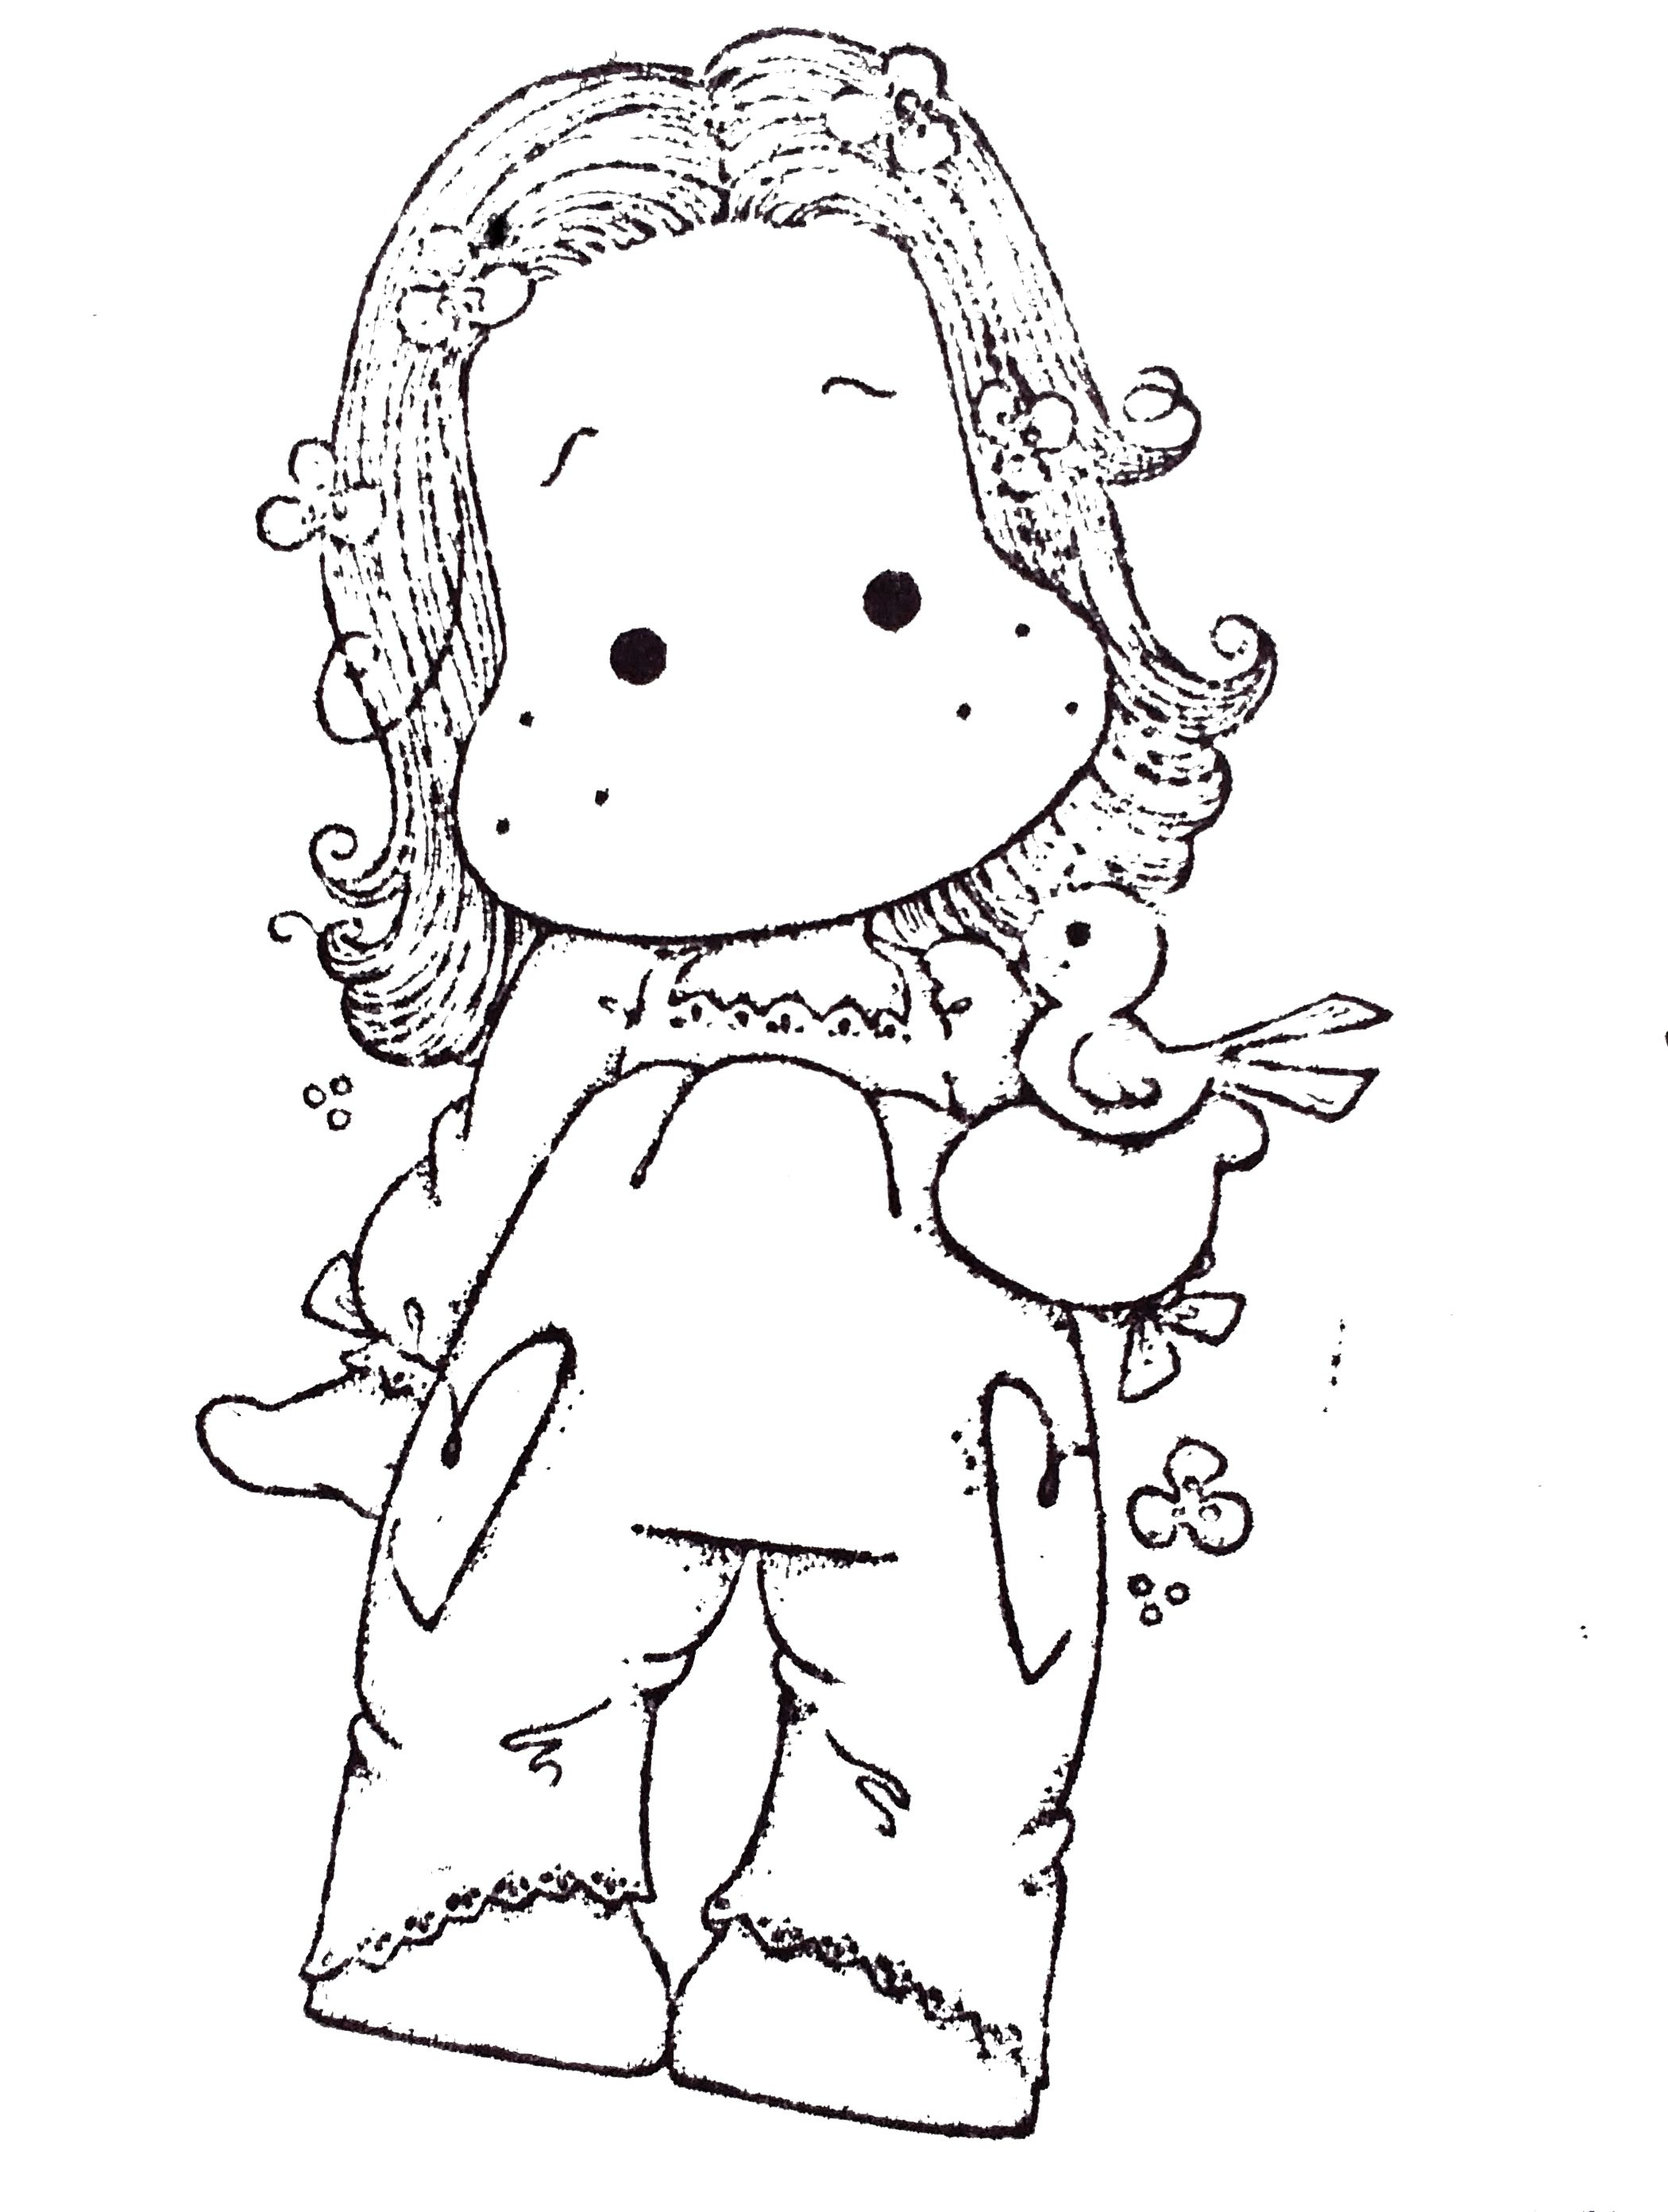 Magnolia Coloring Pages  to Print 19t - Free For Children